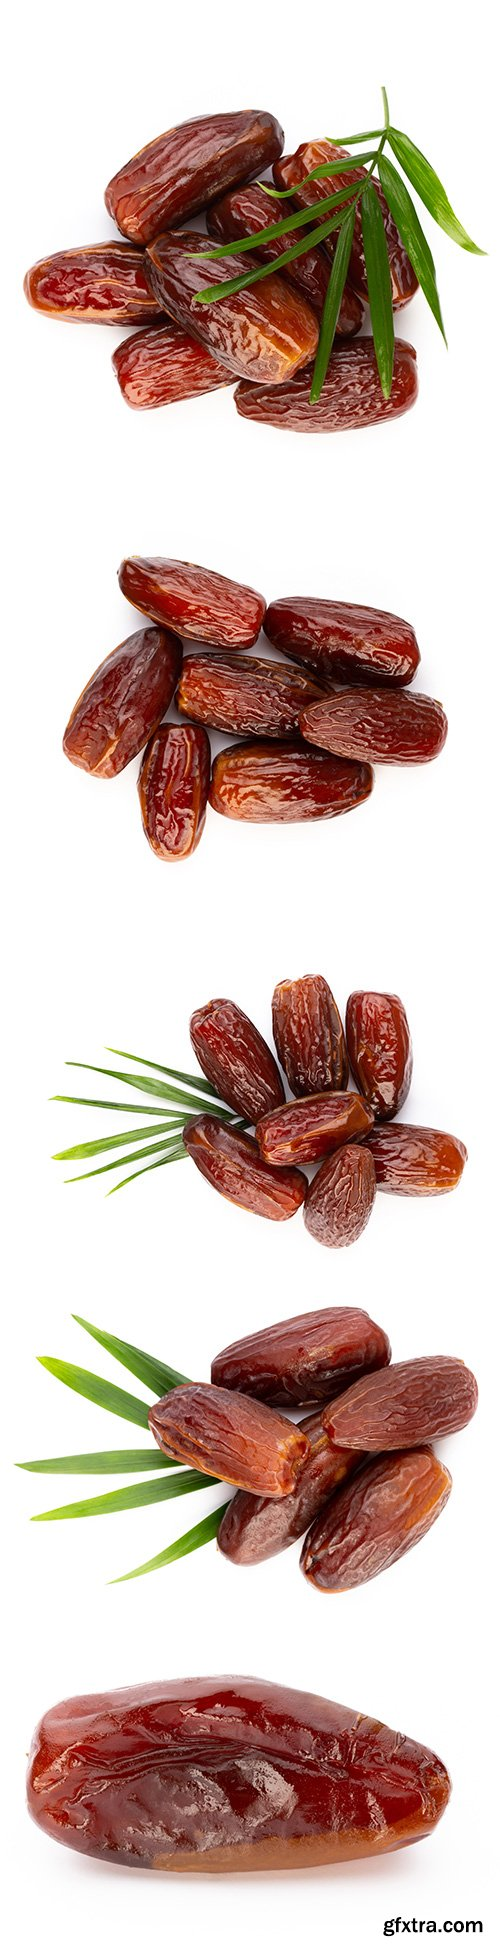 Dry Dates Isolated - 5xJPGs